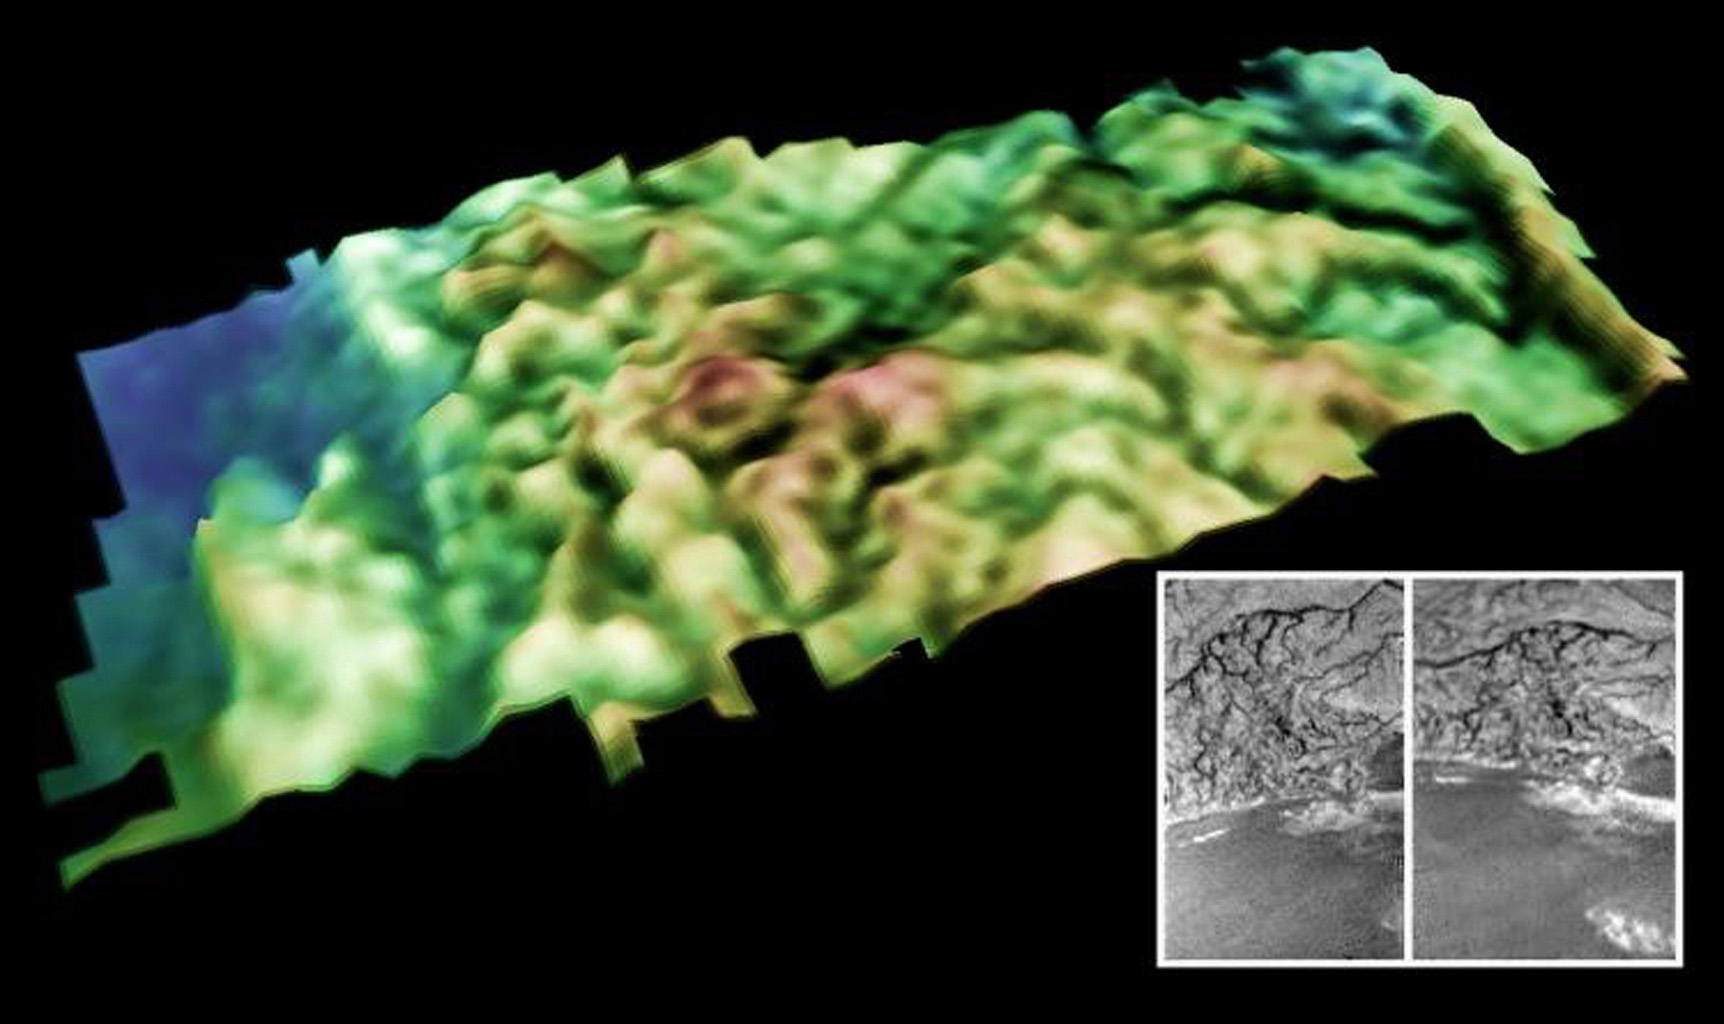 This is a perspective view of the surface of Saturn's moon Titan near the Huygens probe landing site that includes the bright-dark boundary between the bright highlands and lower dark plains.